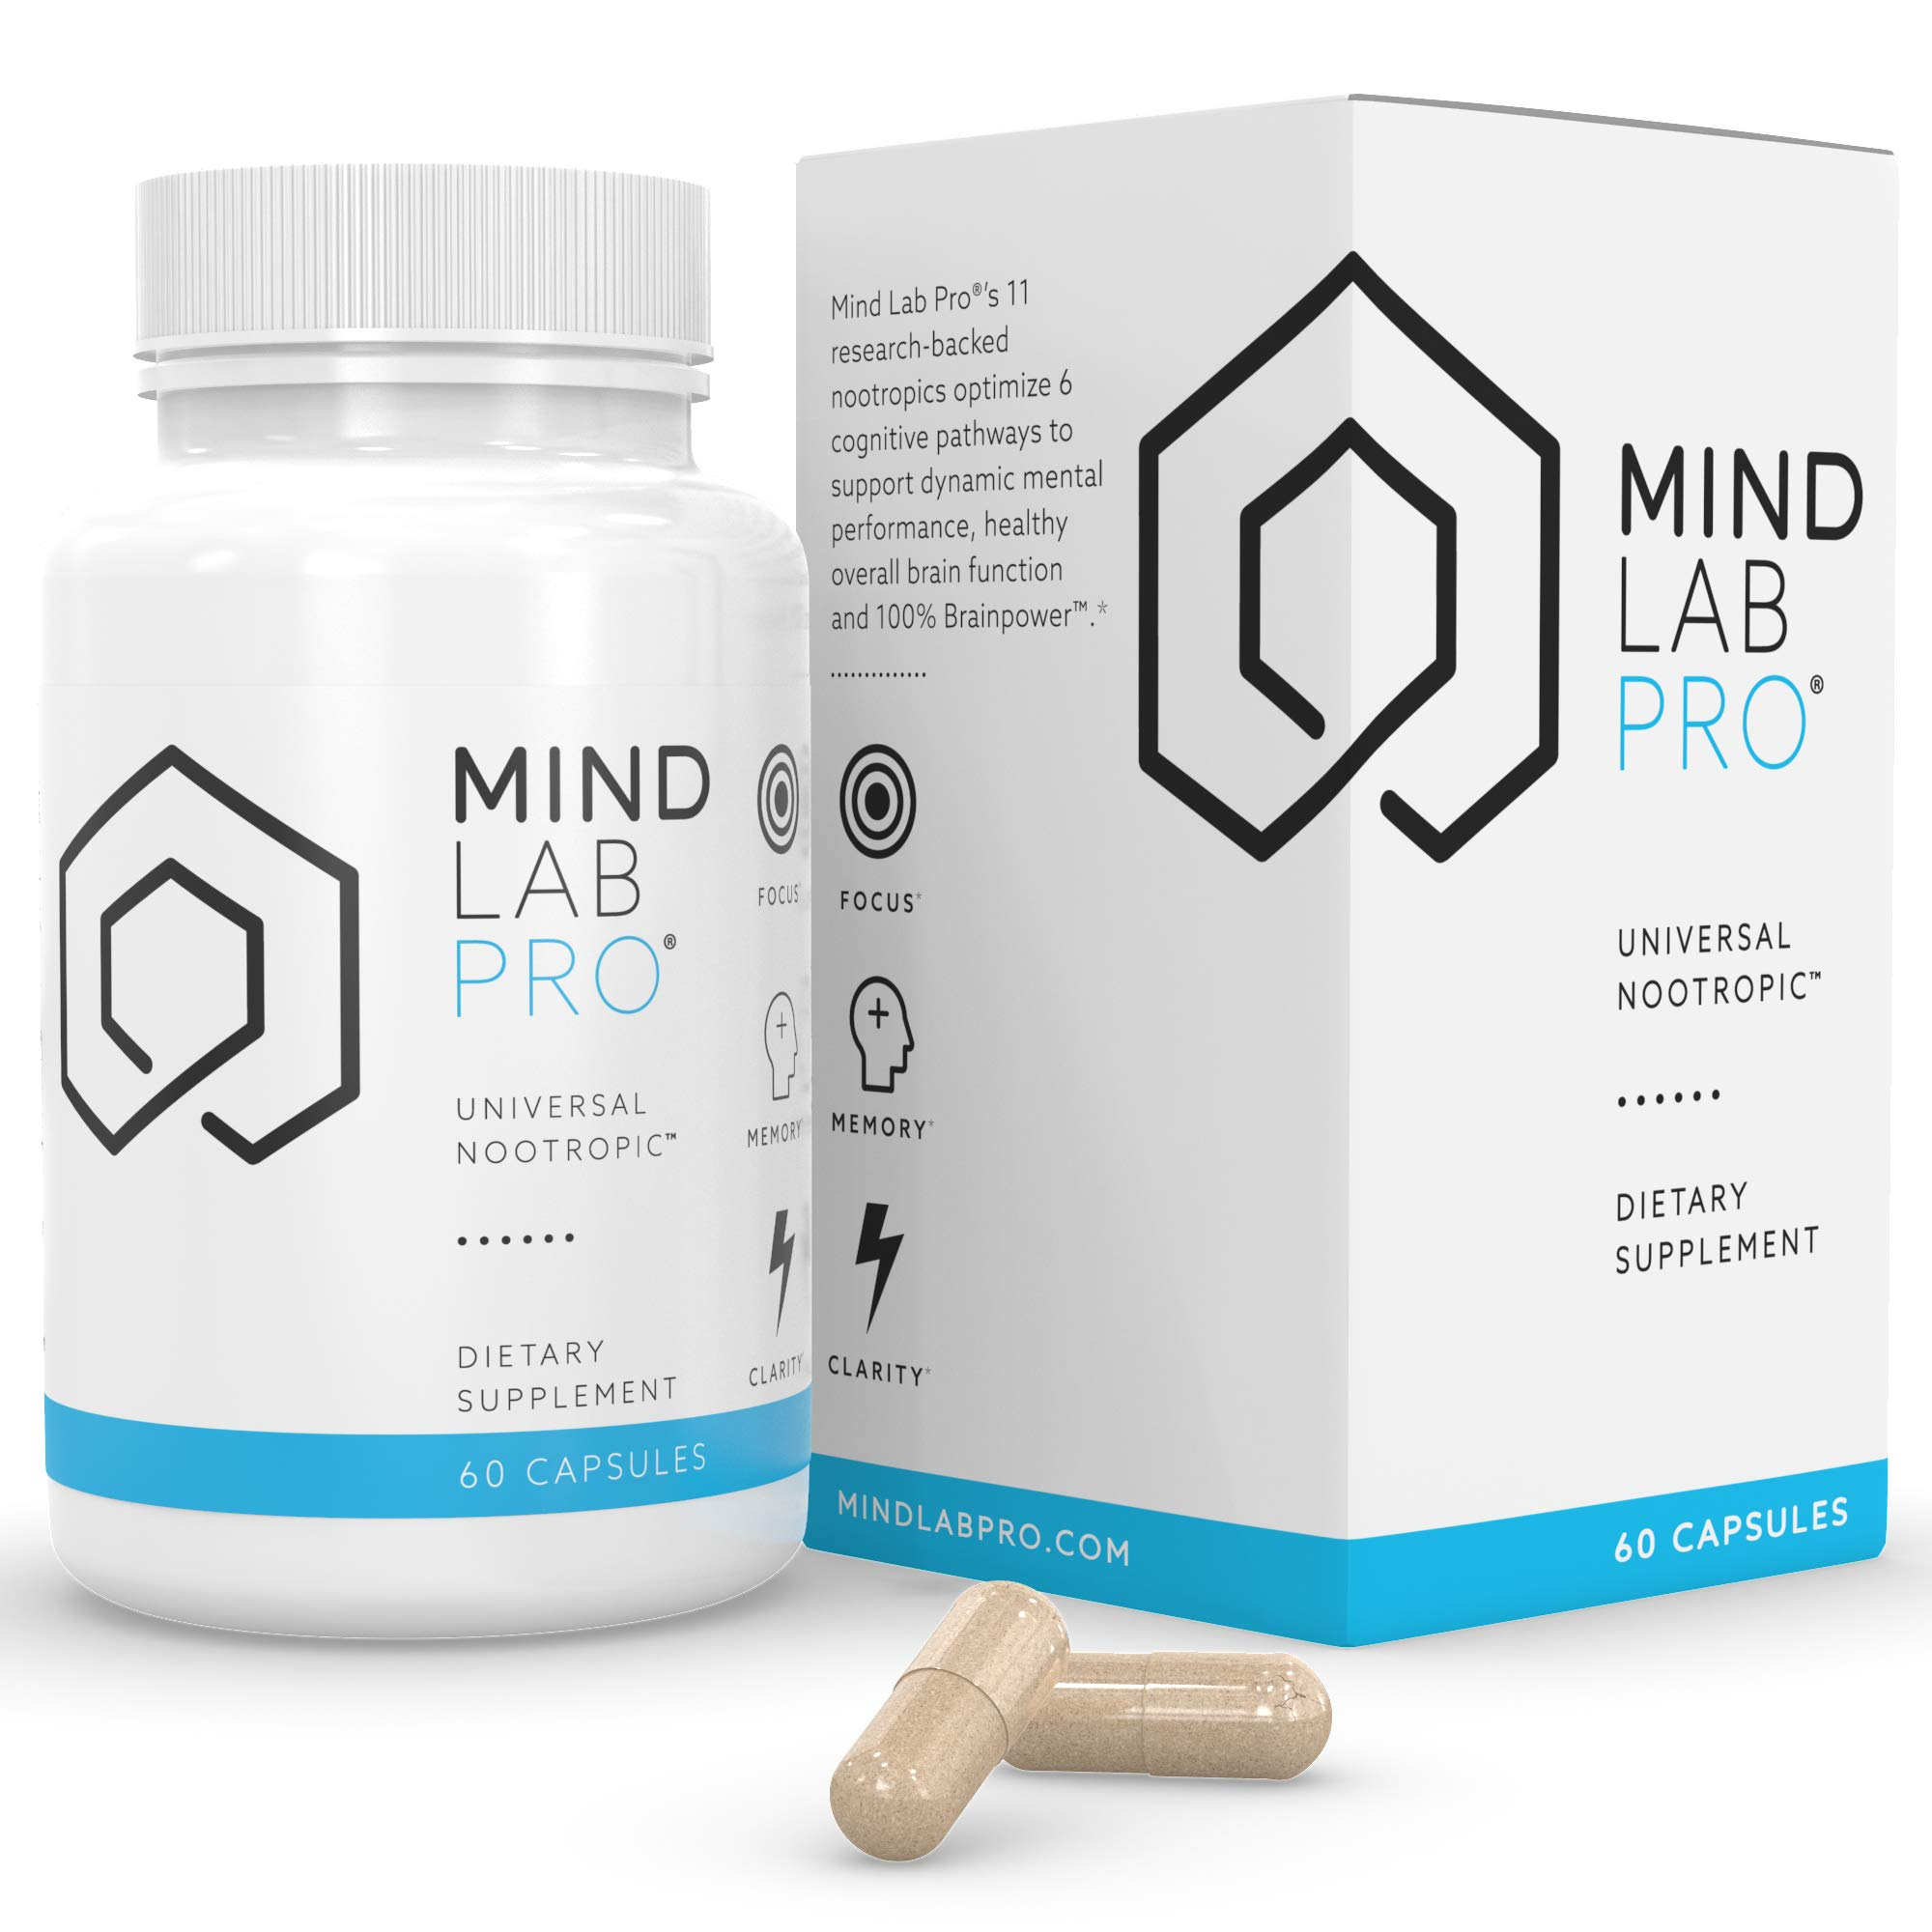 Mind Lab Pro® Universal Nootropic™ Brain Booster Supplement for Focus, Memory, Clarity, Energy - 60 Capsules - Plant-Based, Naturally Sourced Memory Vitamins for Better Brain Health